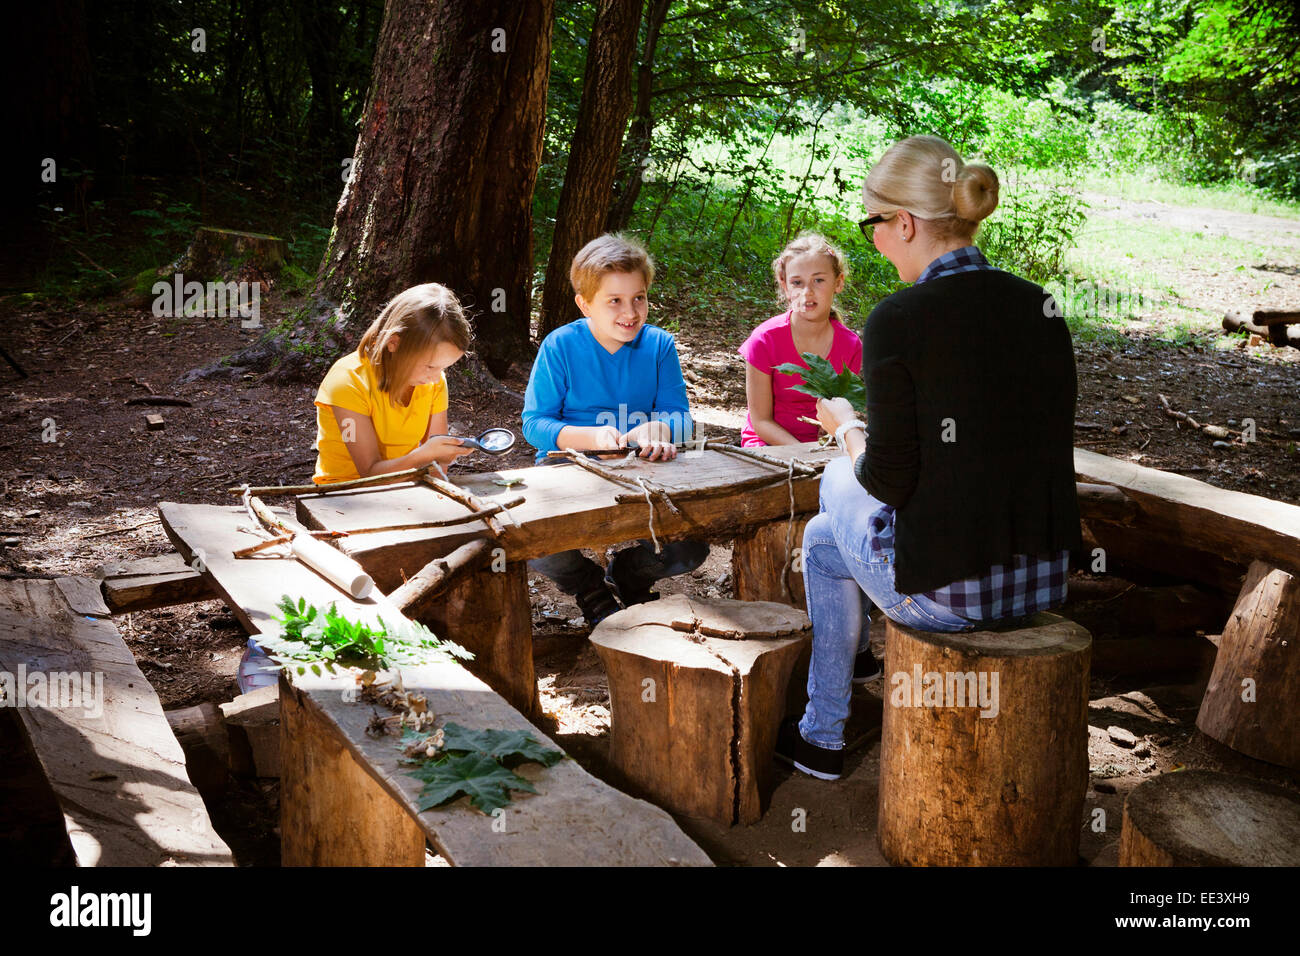 Children and teacher crafting in forest camp, Munich, Bavaria, Germany Stock Photo